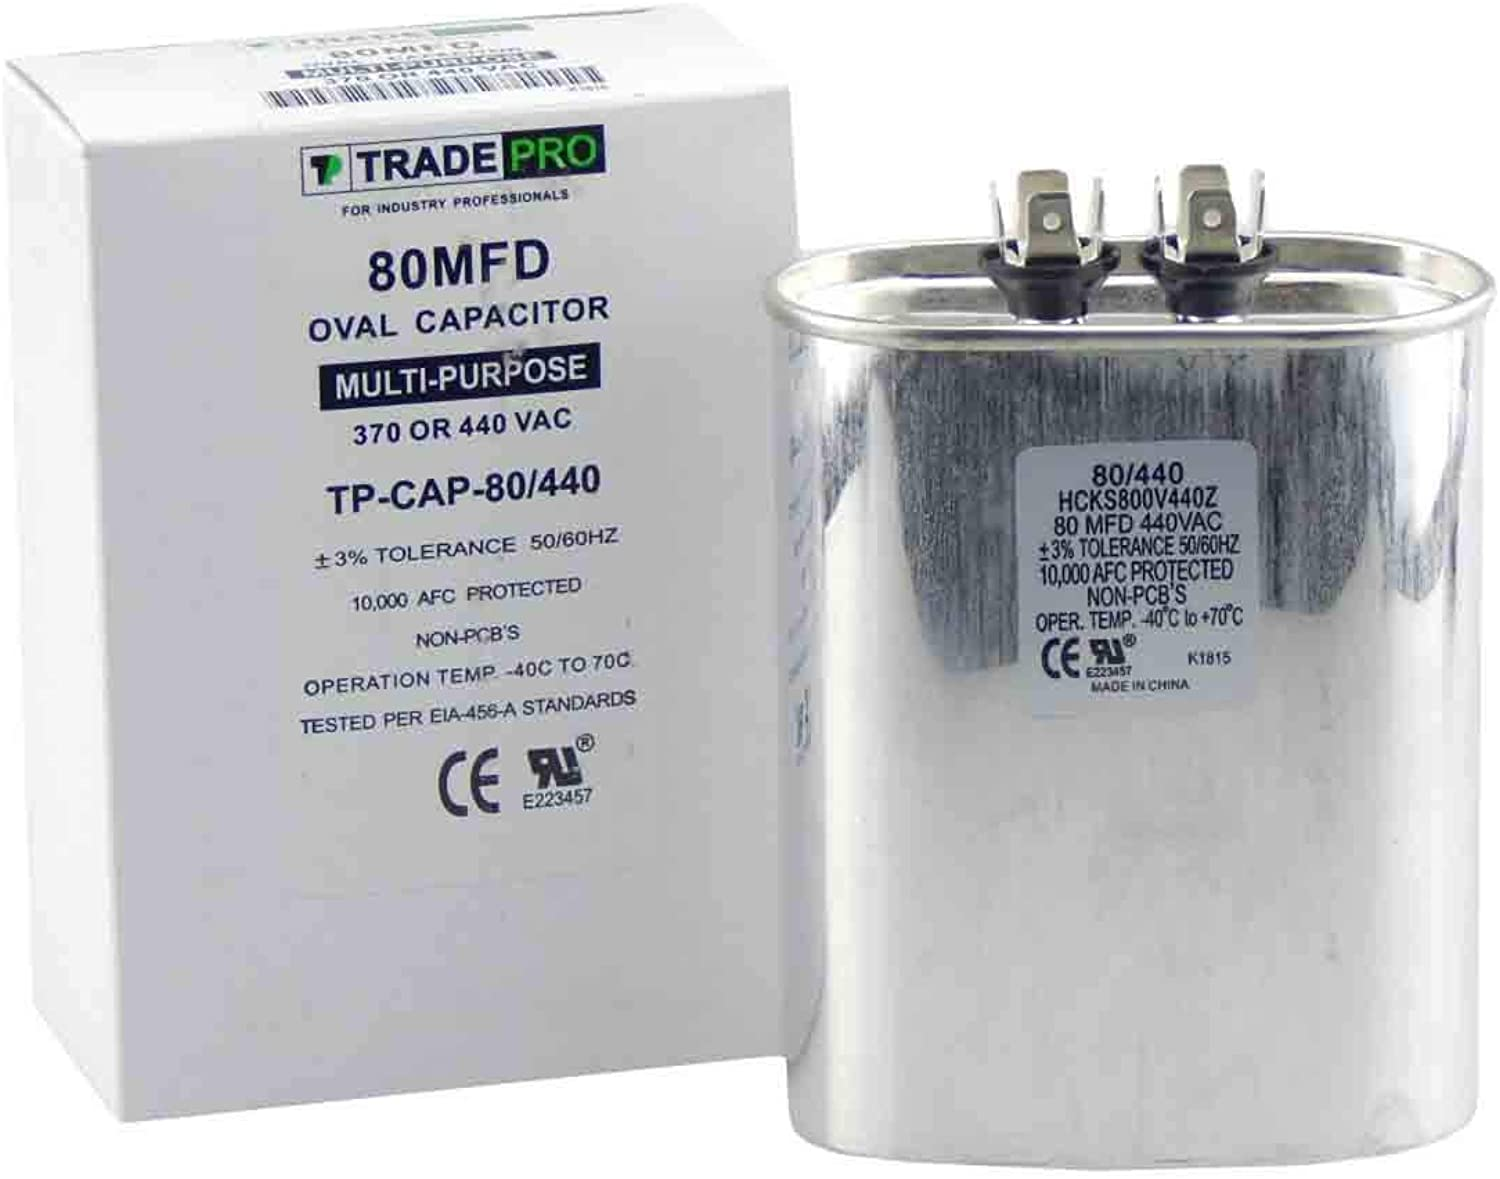 80 mfd Capacitor, Industrial Grade Replacement for Central Air-Conditioners, Heat Pumps, Compressors, Pool Pumps, etc Oval Multi-Purpose 370 440 Volt - by Trade Pro